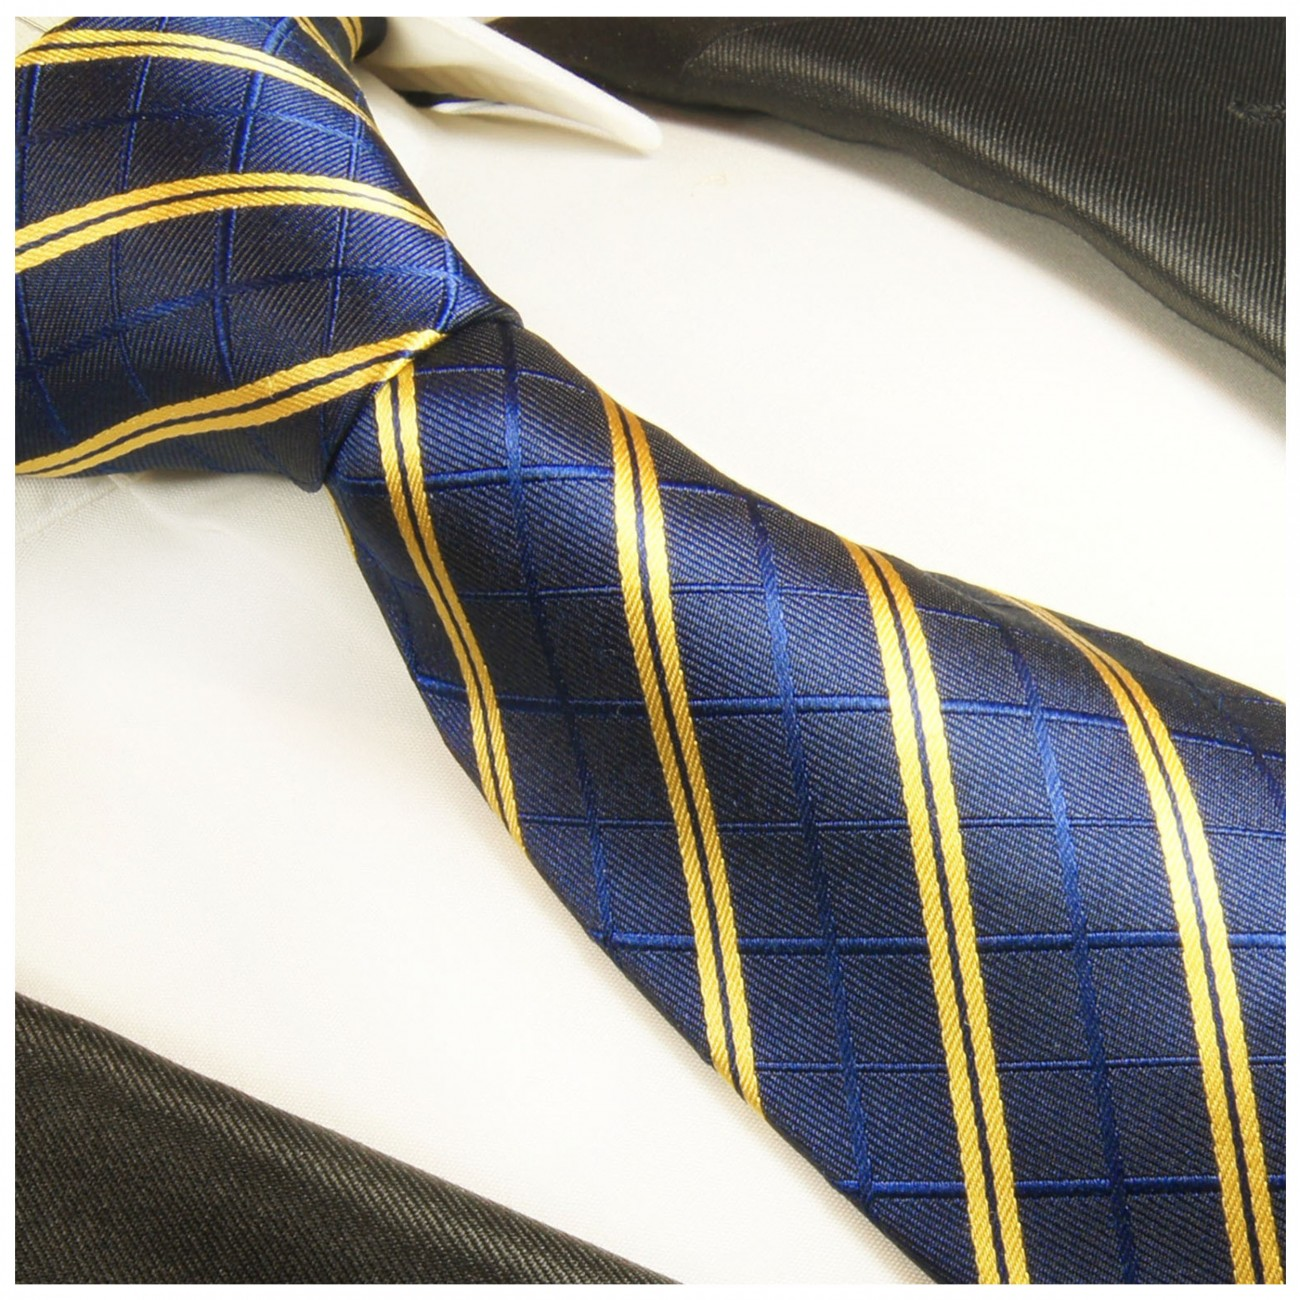 Blue striped necktie - silk mens tie and pocket square and cufflinks